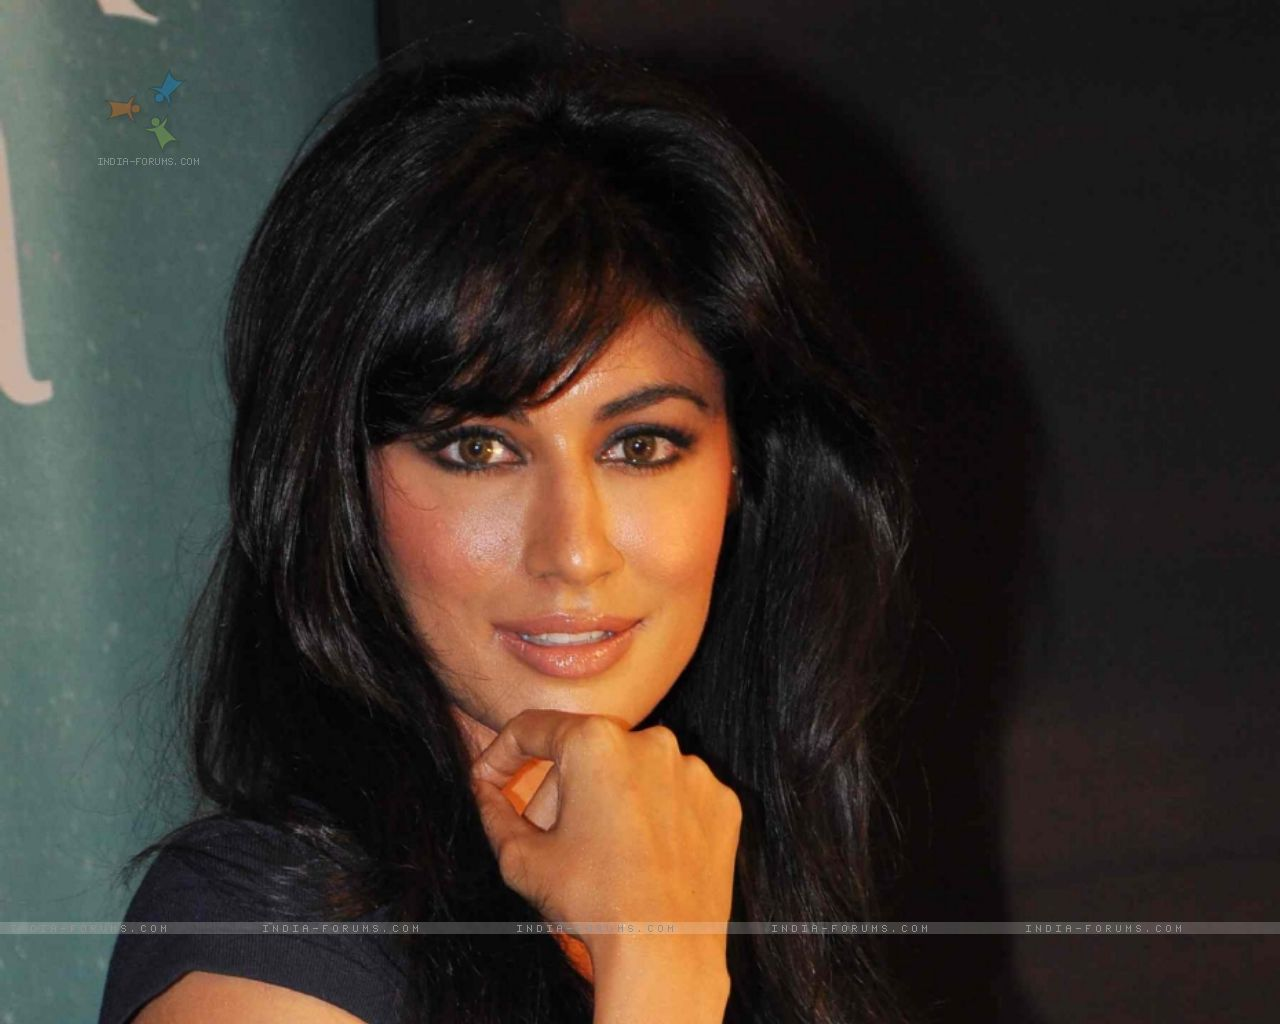 chitrangada singh best awesome and fabulous images hd wallpapers